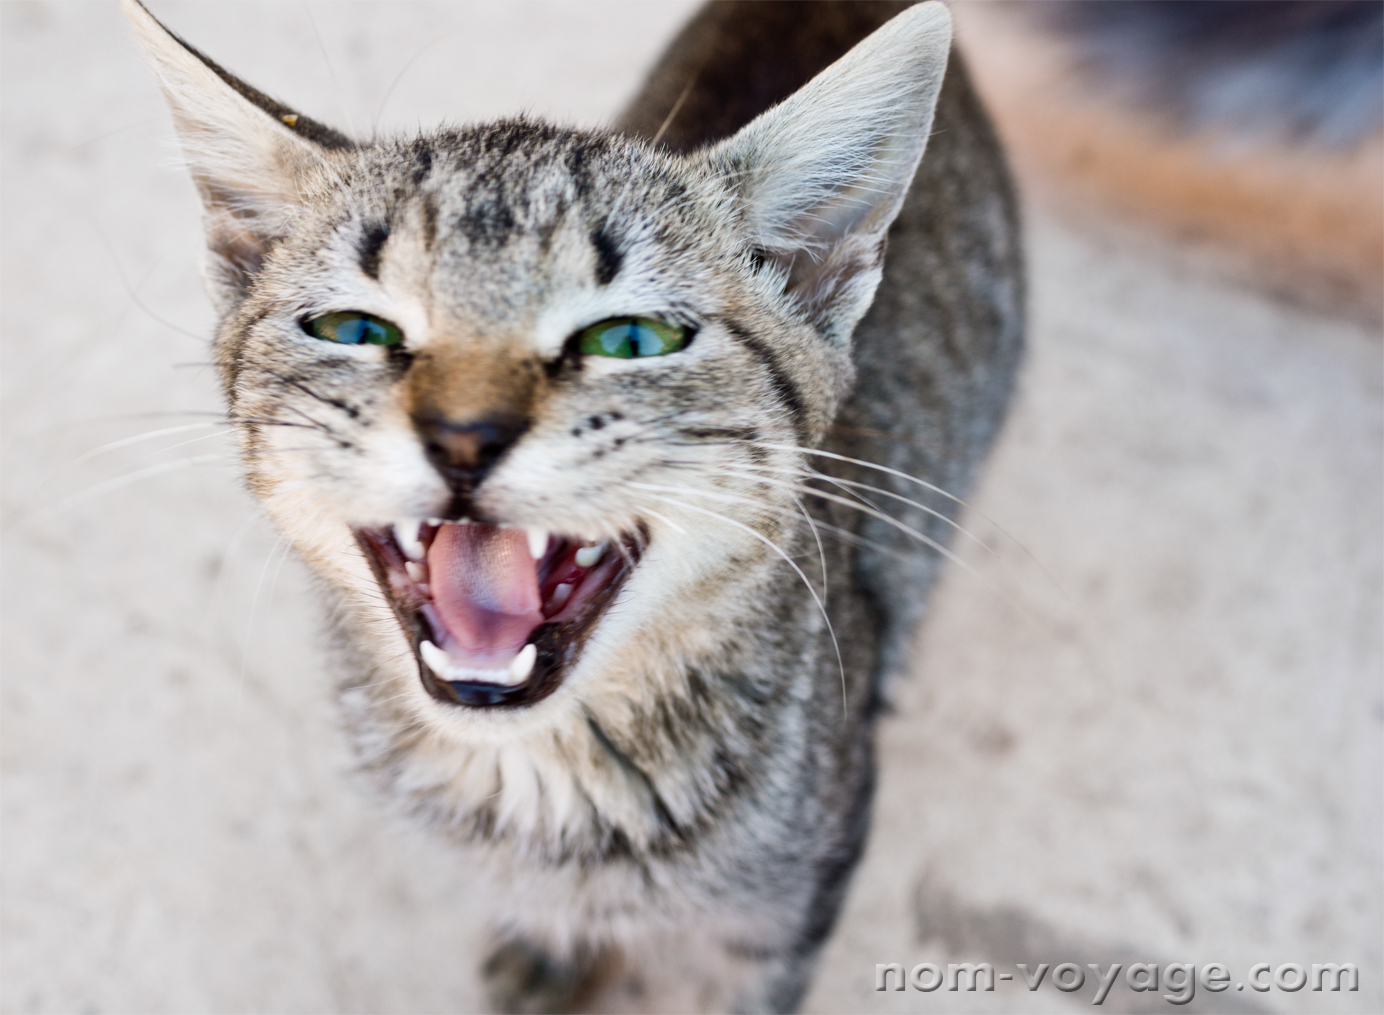 This little guy was very talkative and very hungry. He was one of the cats living in El Badi Palace in Marrakech.